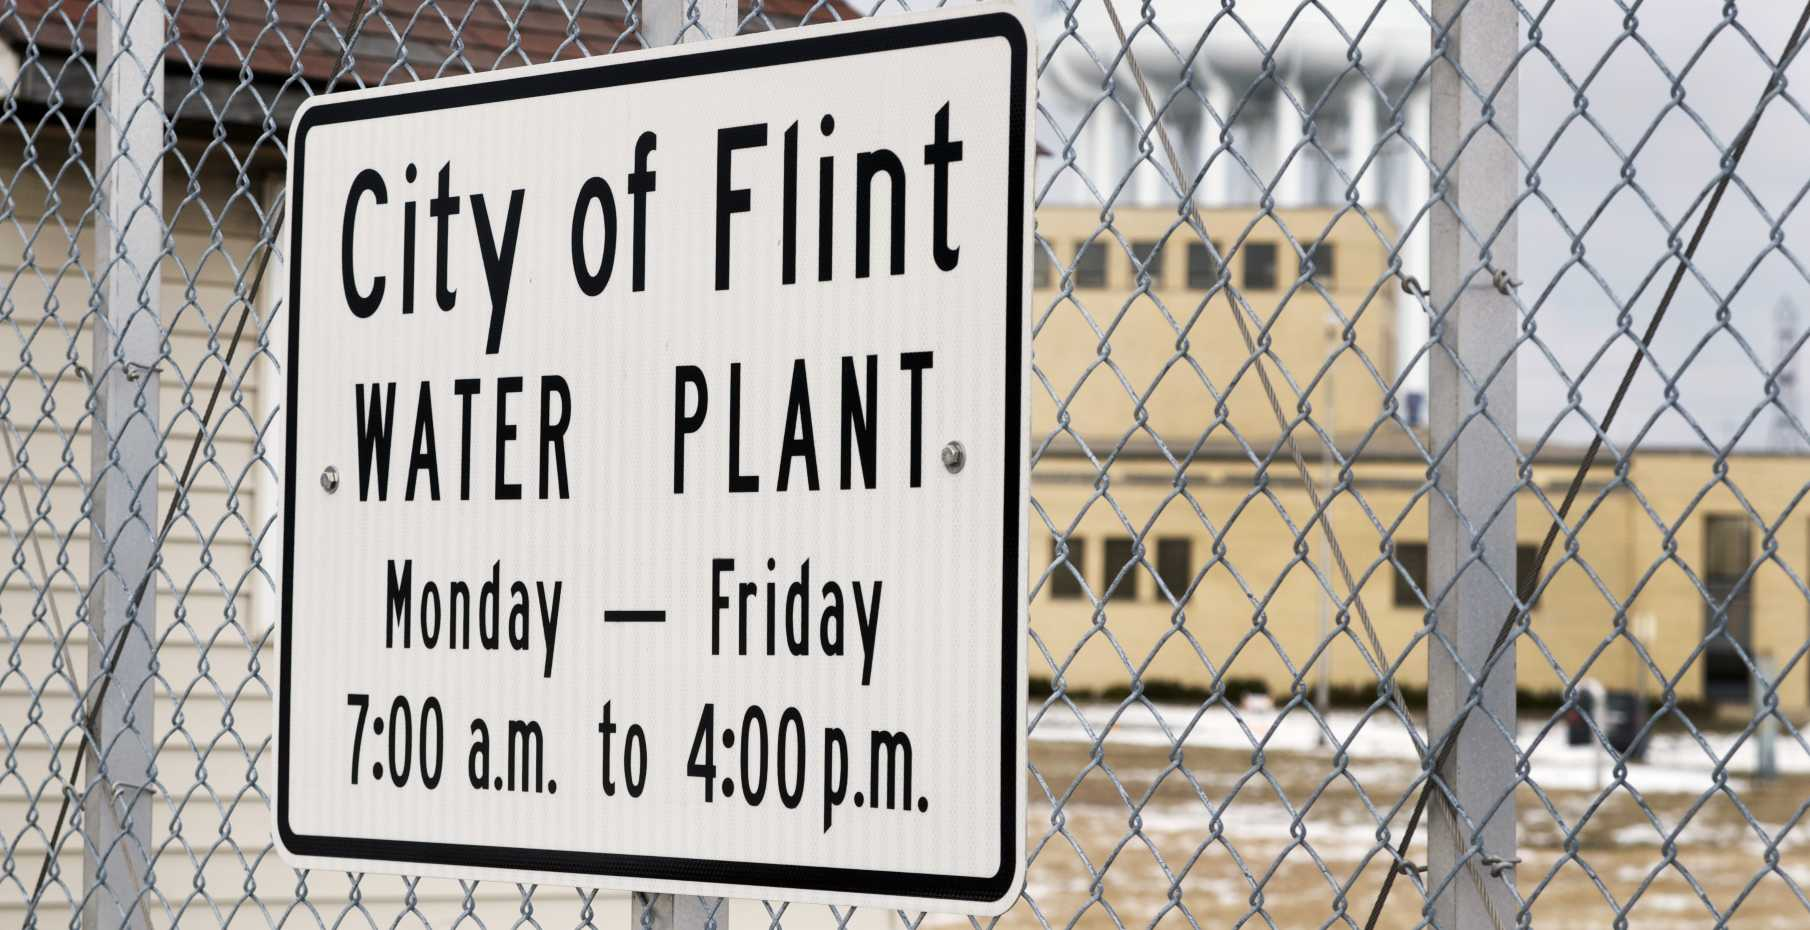 Flint residents have reached a preliminary settlement to resolve the major contamination of the city water source, due to the negligence and greed of the city government and officials. While the settlement has many positives, there are still a number of concerns that the settlement doesn't make whole all the damages that the contaminated water caused.